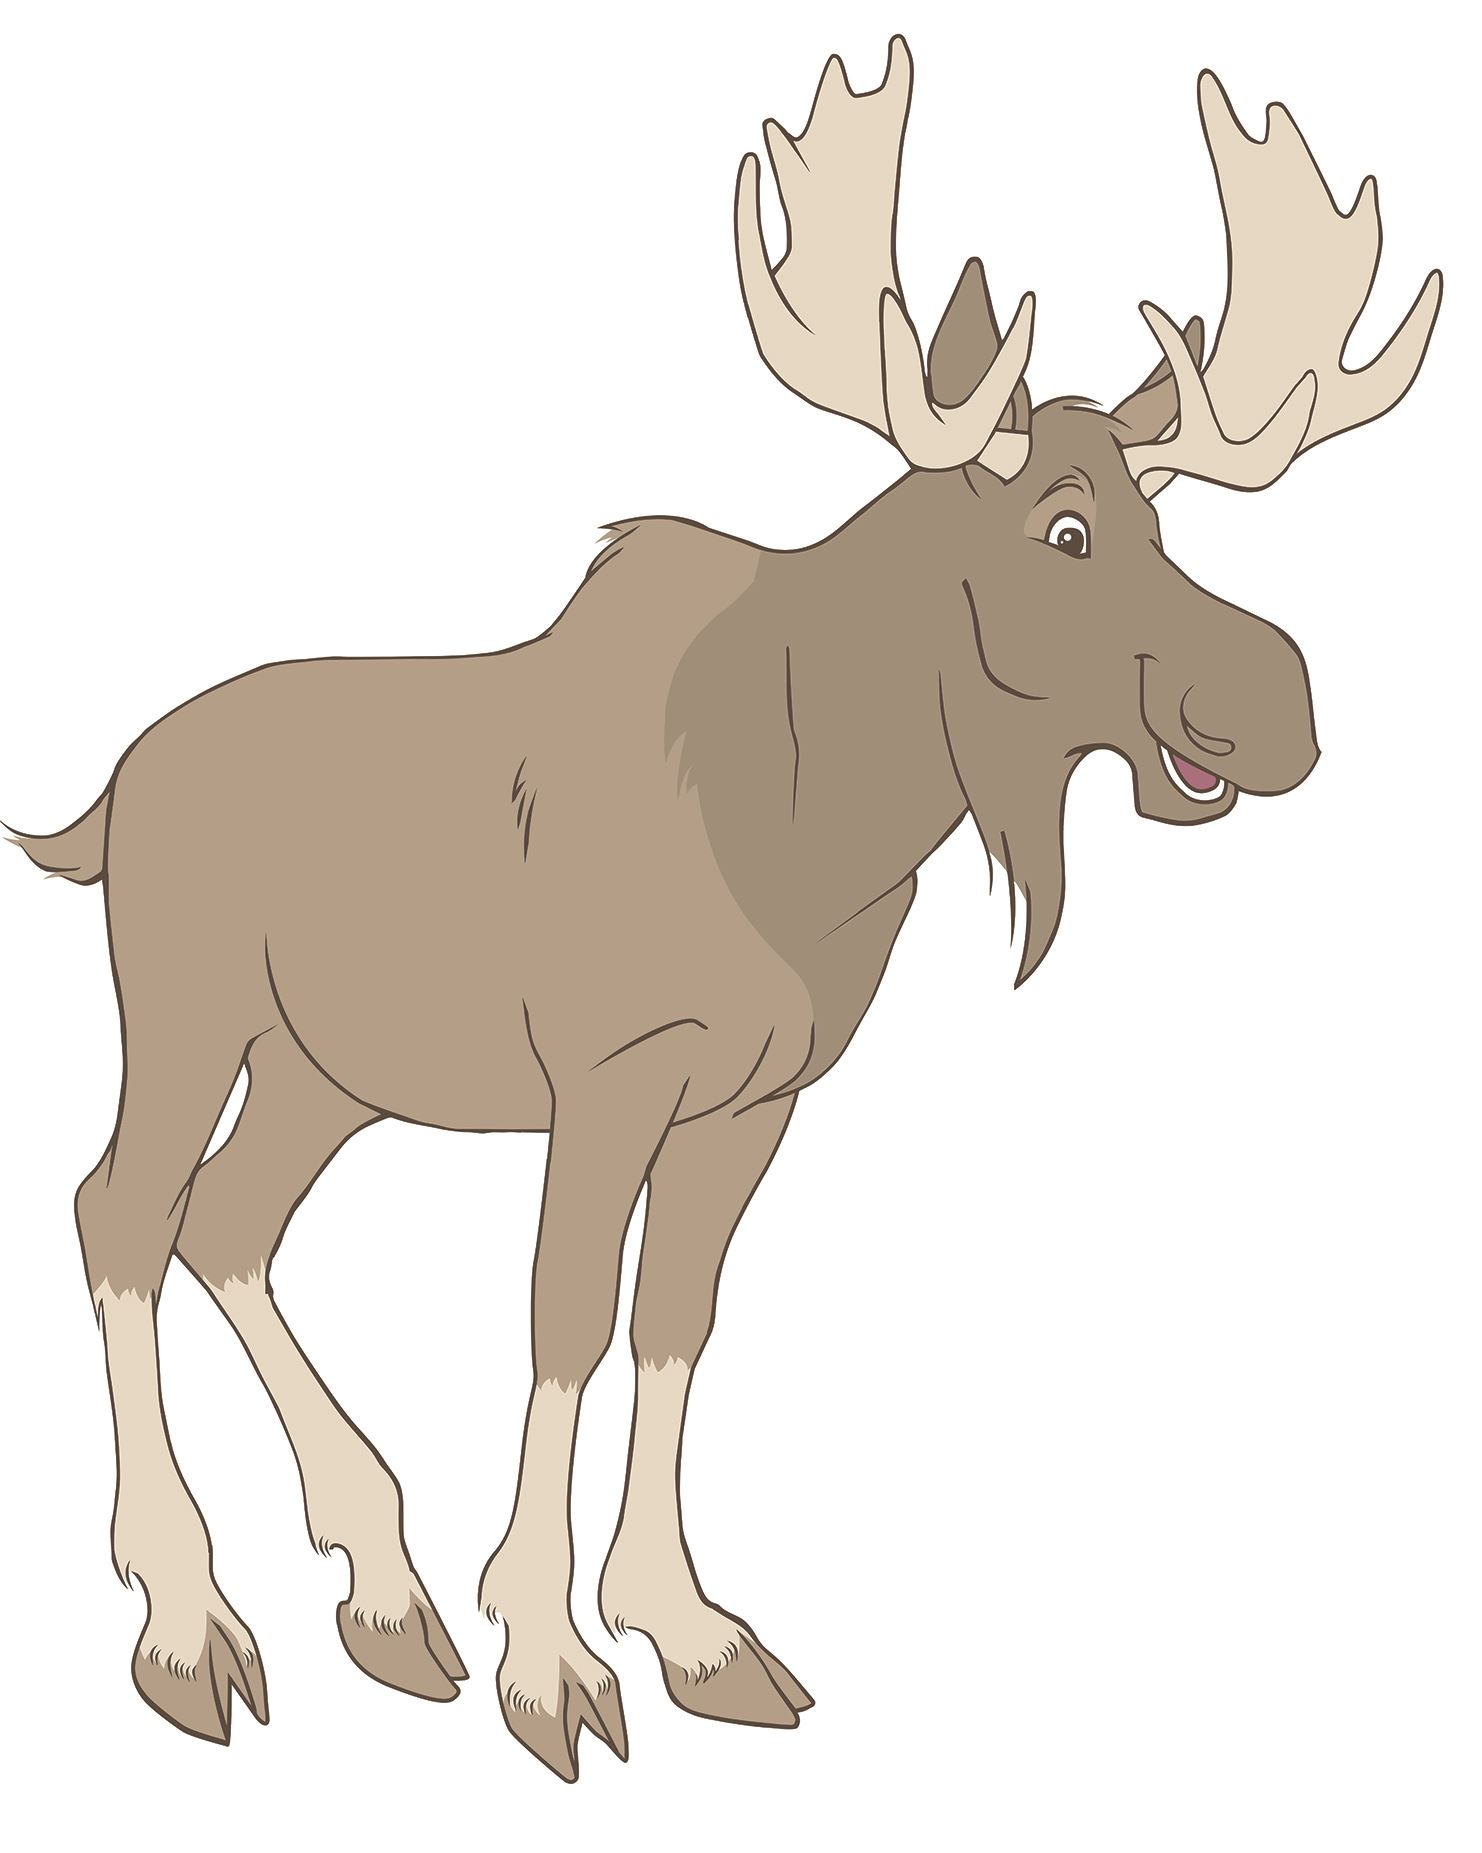 Full Body Mac the Moose